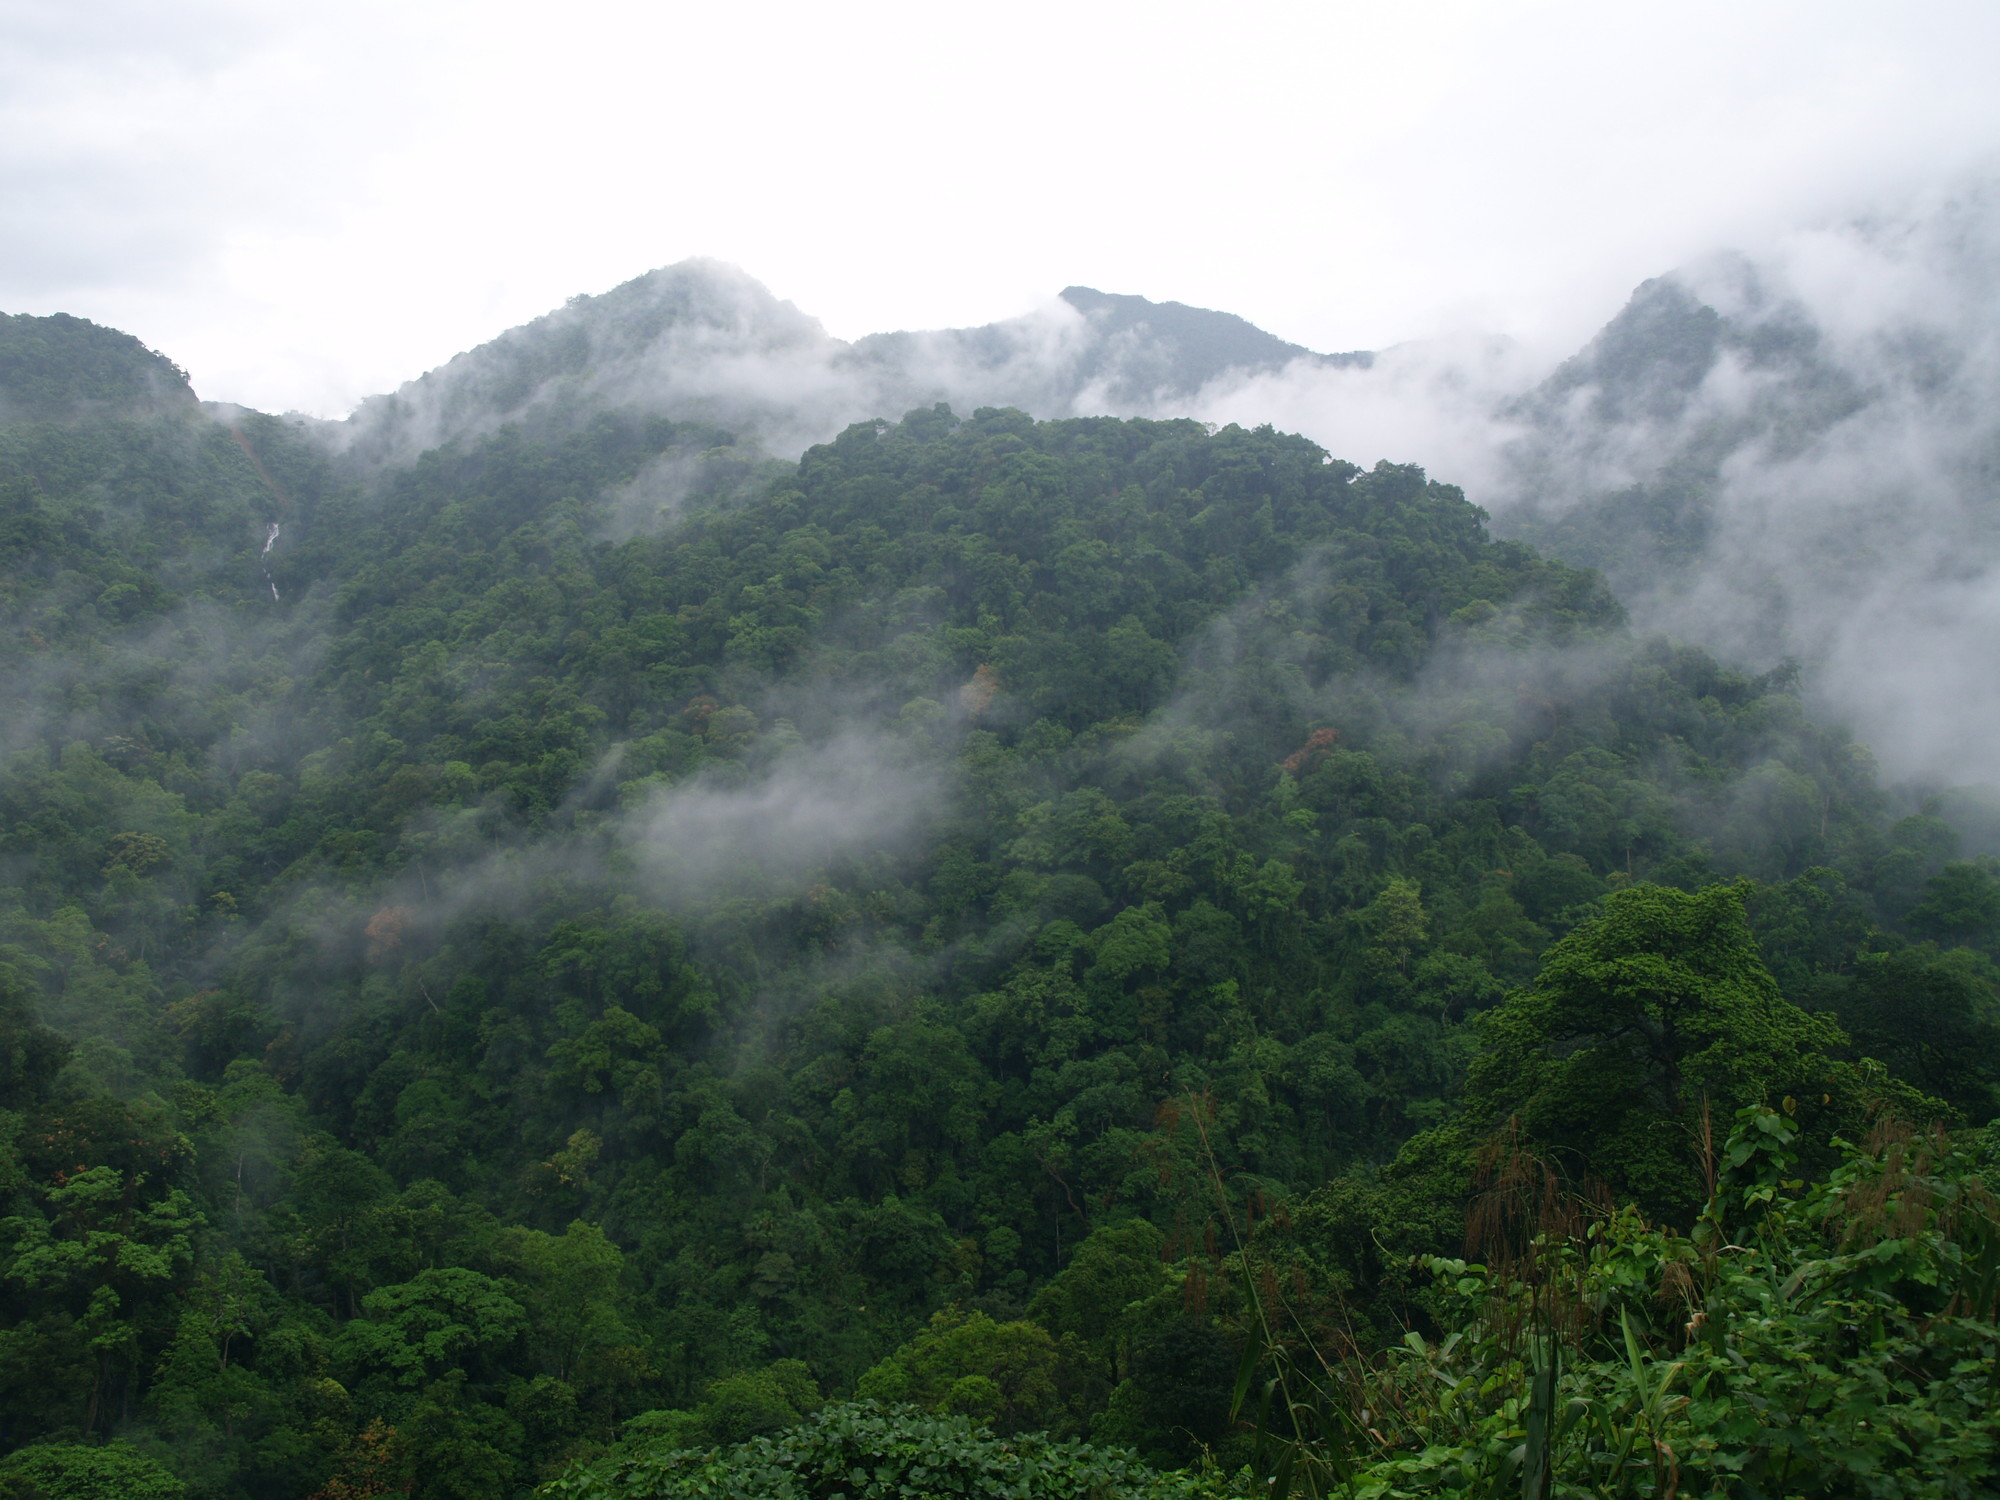 Khe Nuoc Trong Forest